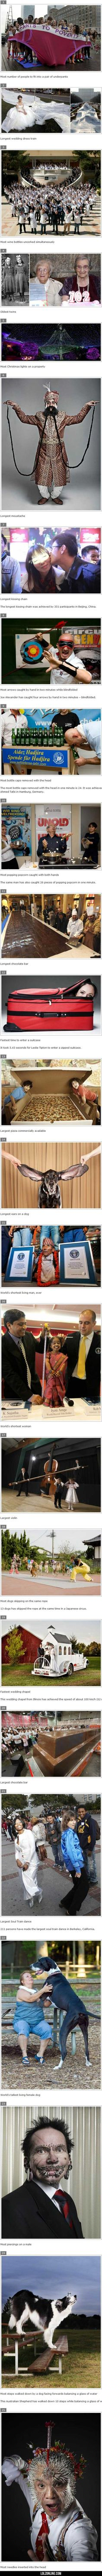 Some awesome 2012 Guiness World Records#funny #lol #lolzonline